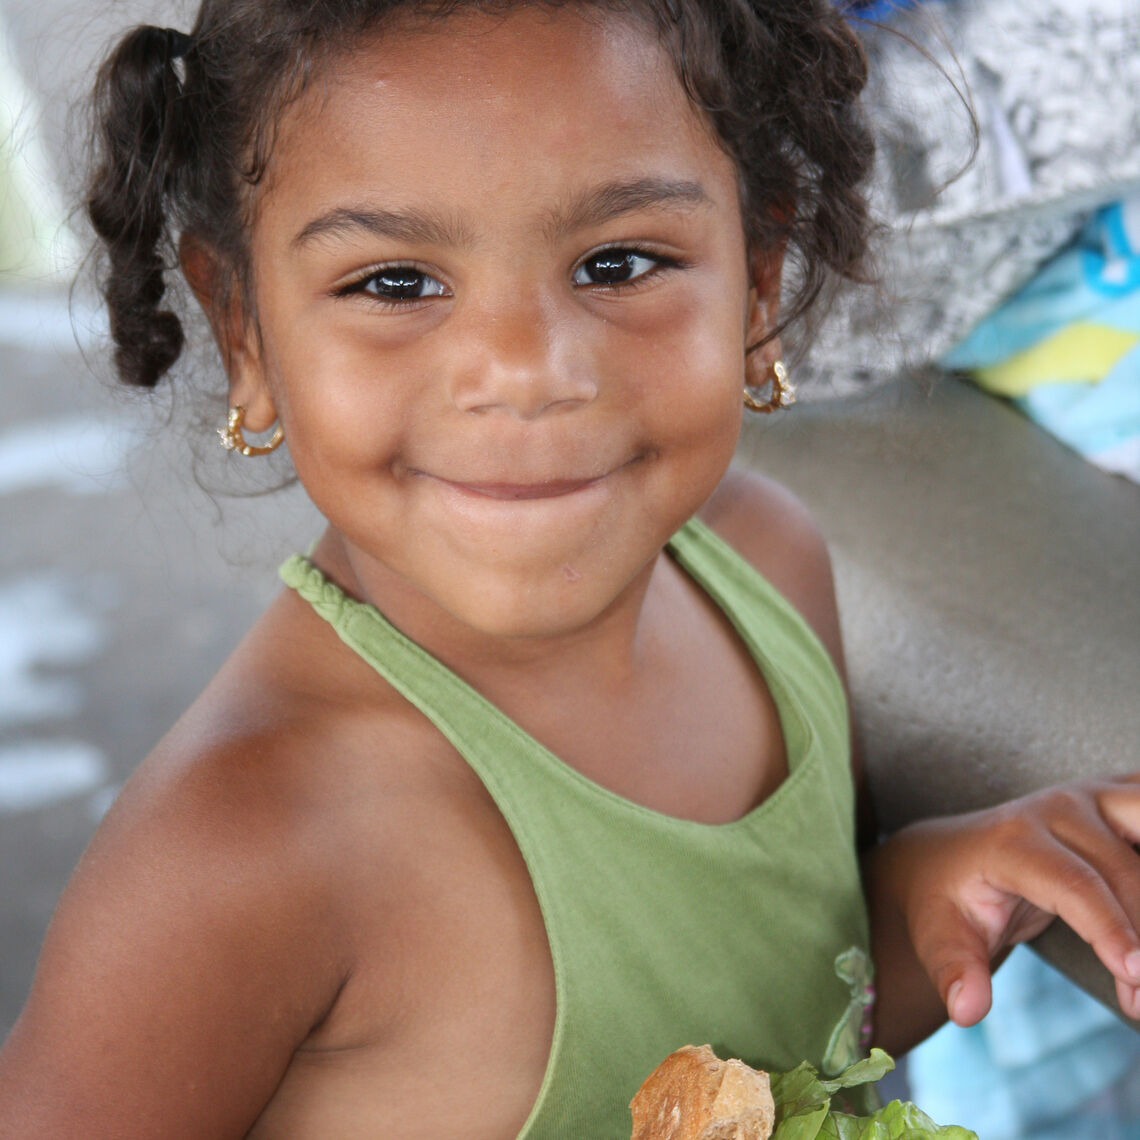 young girl eating a sandwich outside in the summer smiling